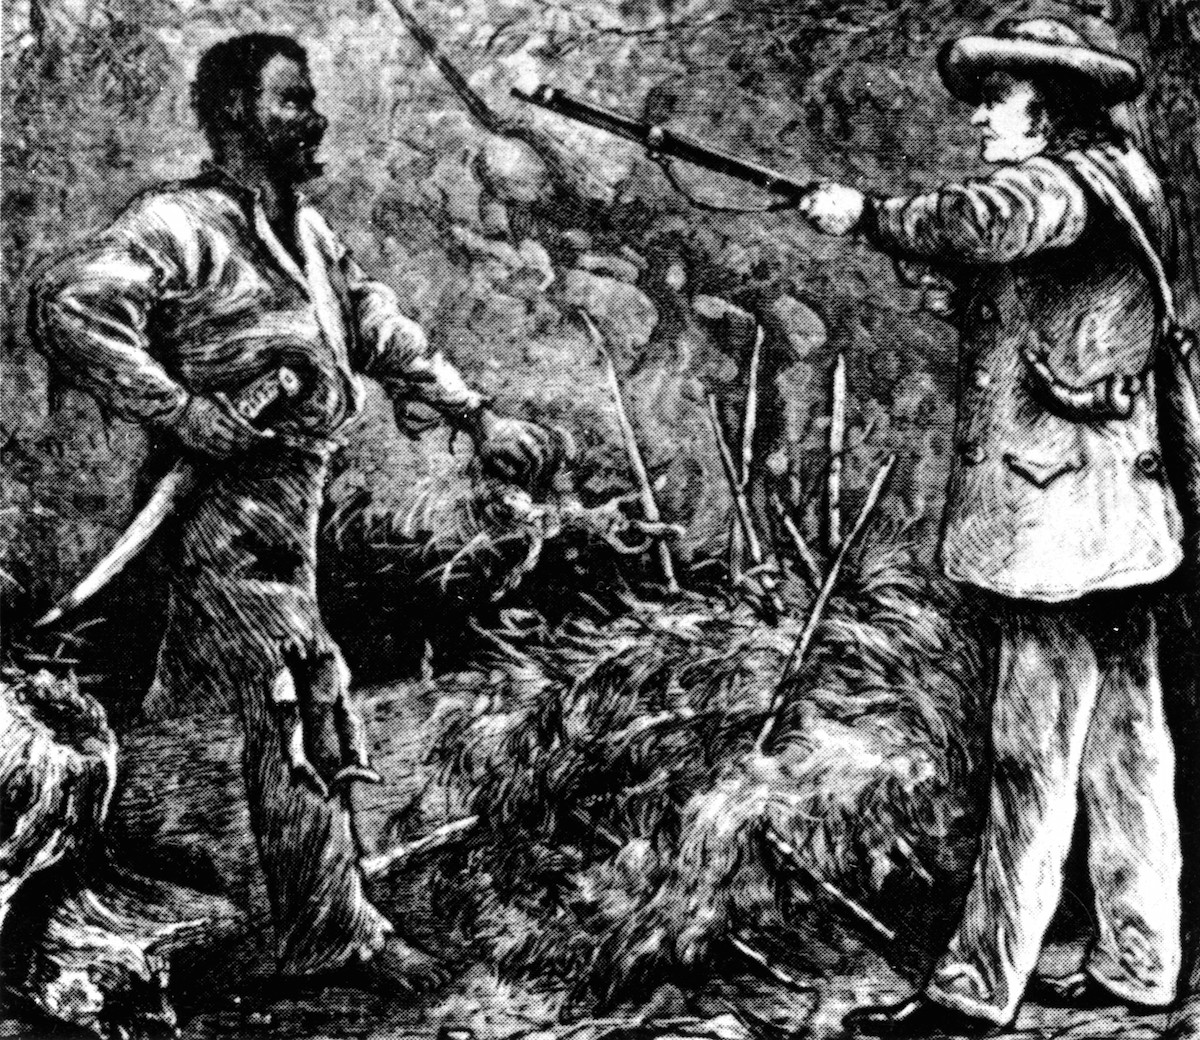 Illustration (19th-century) of the discovery of Nat Turner following the failure of his rebellion